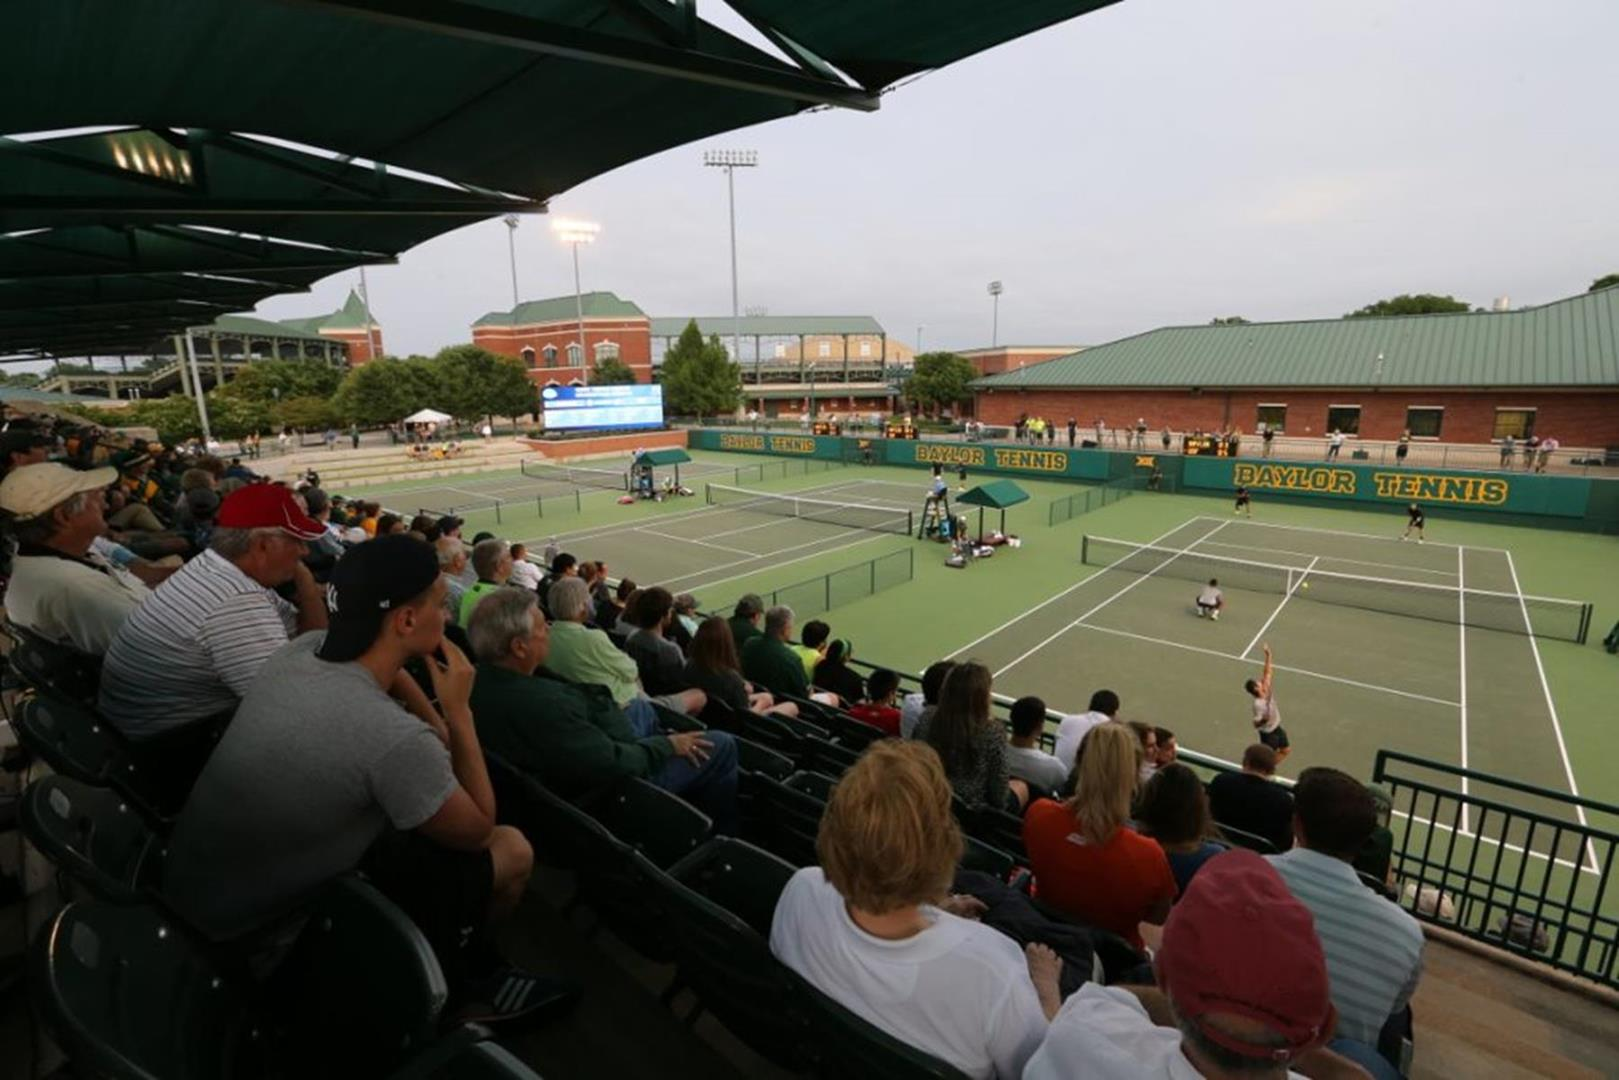 TENNIShurdtenniscenter